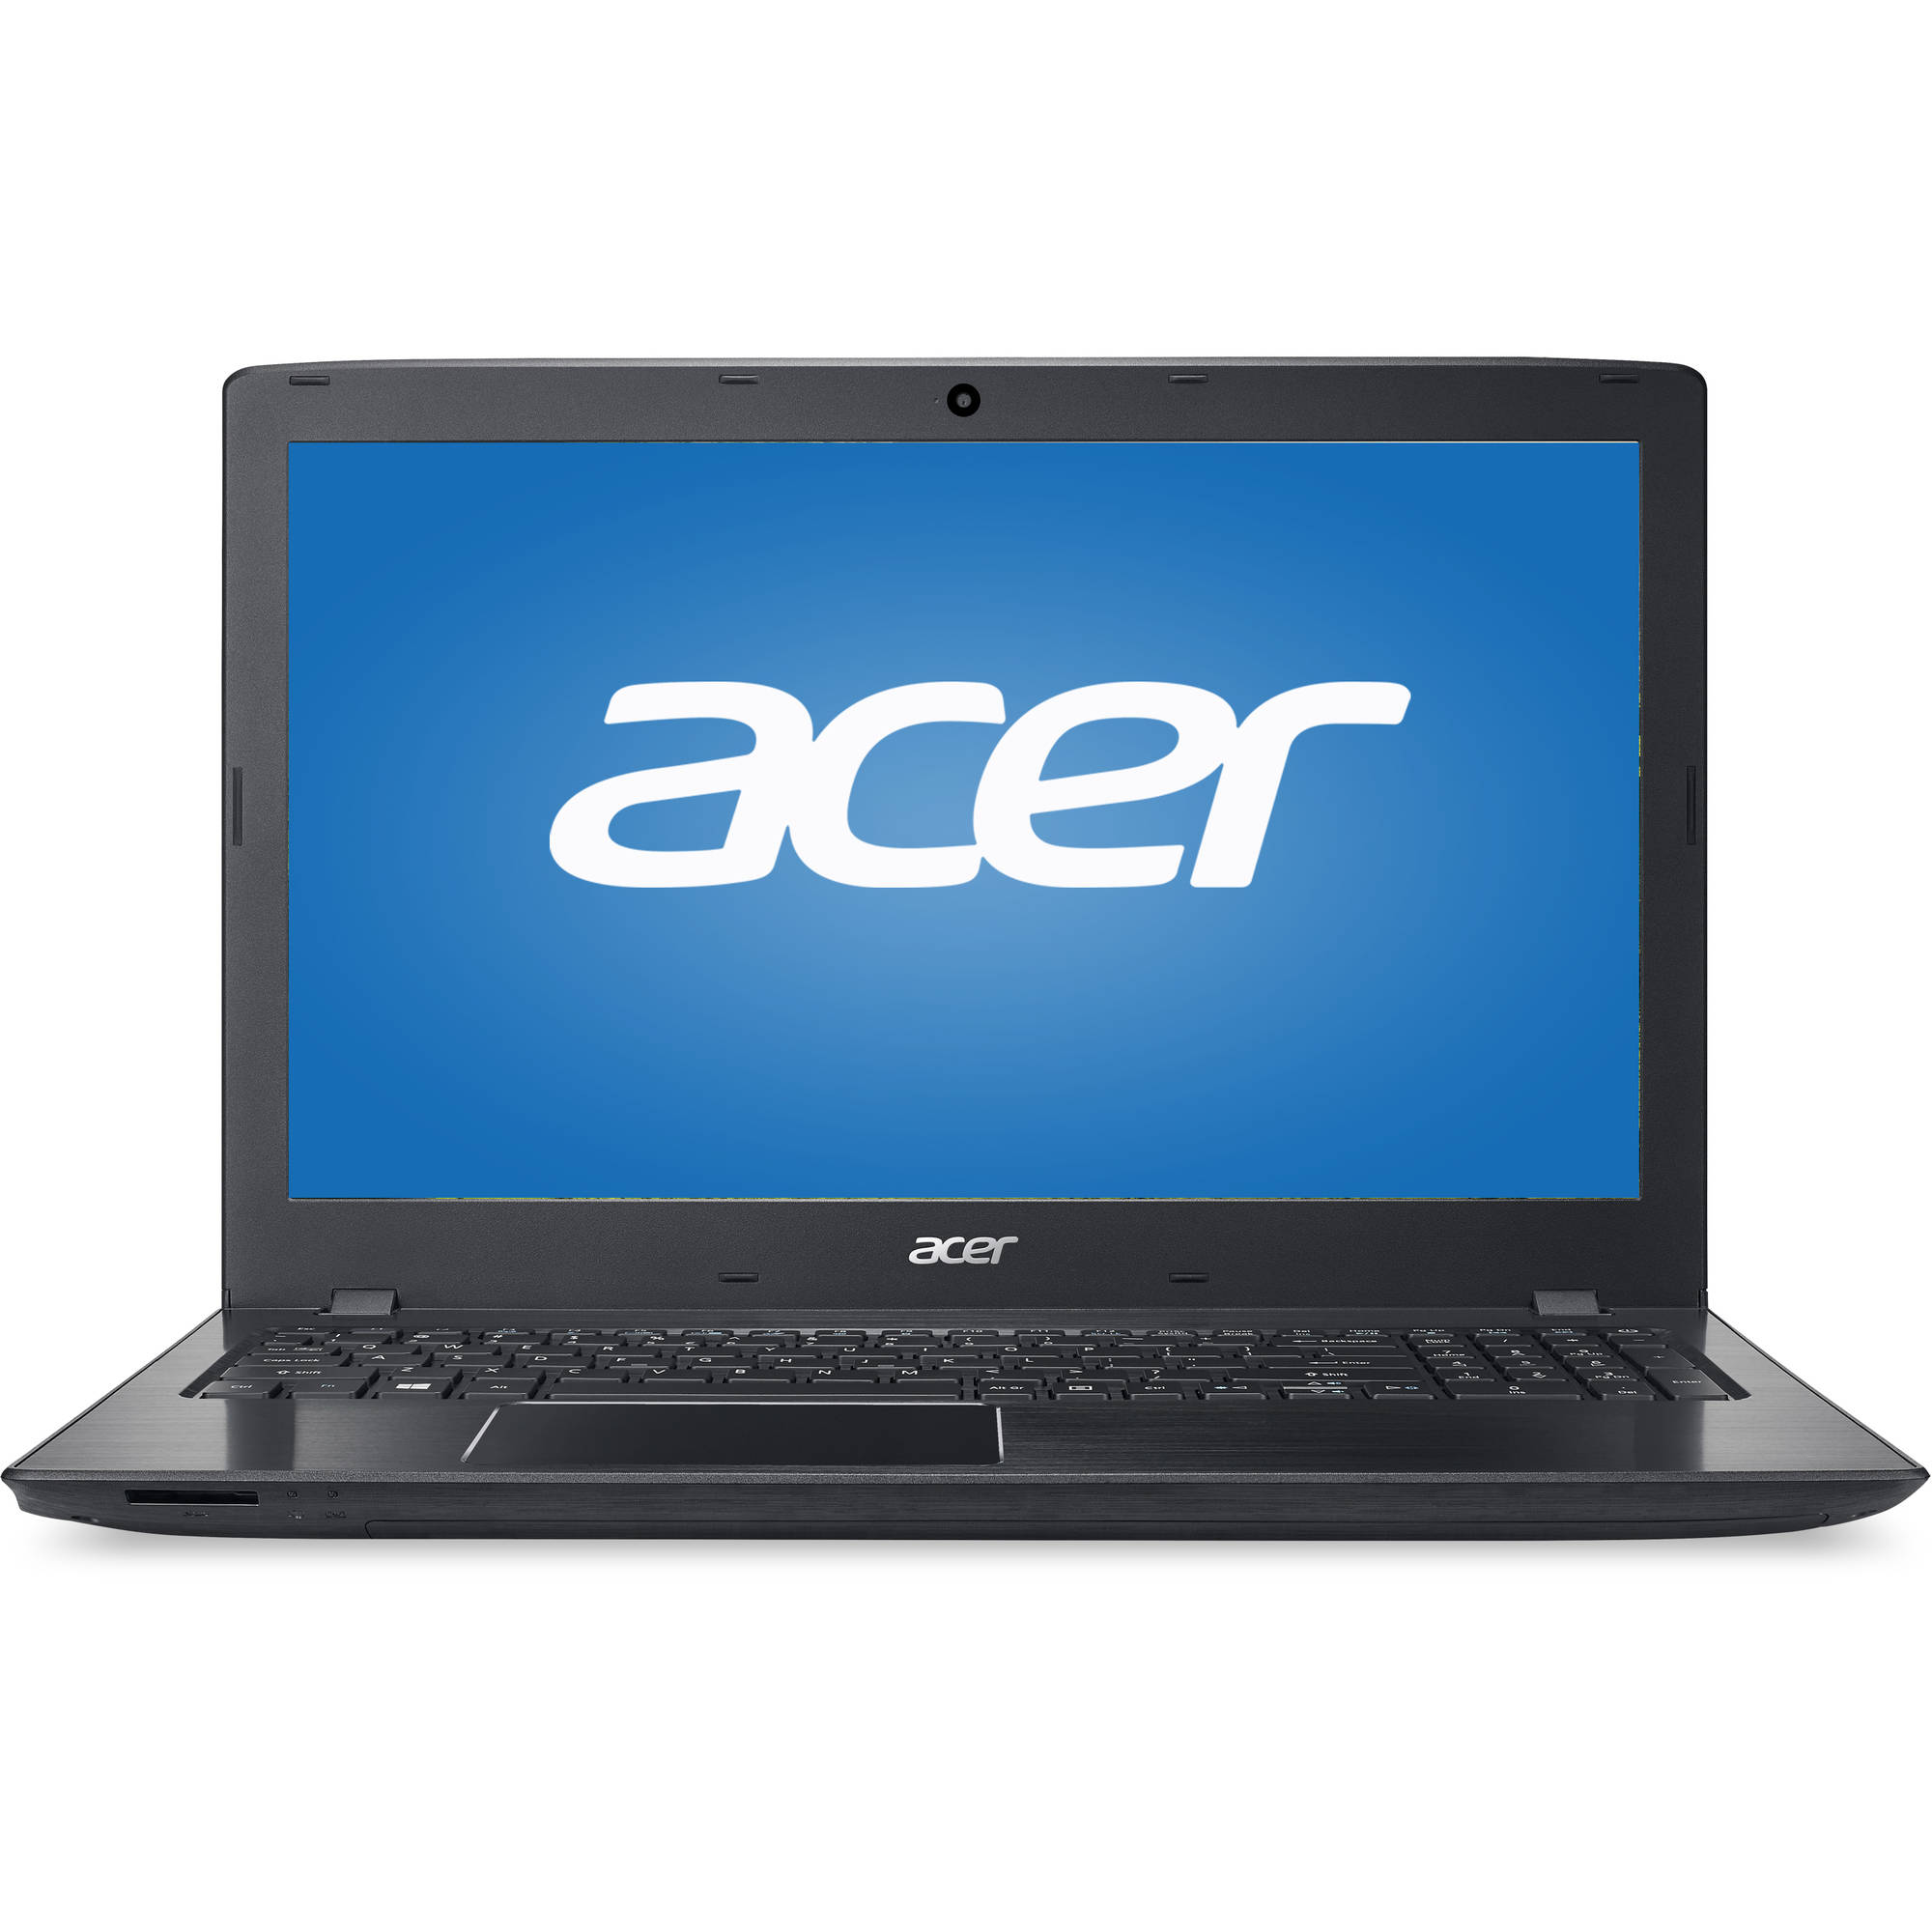 "Acer Aspire E5-575-54E8 15.6"" Laptop, Windows 10 Home, Intel Core i5-6200U Dual-Core Processor, 6GB Memory, 1TB Hard Drive"